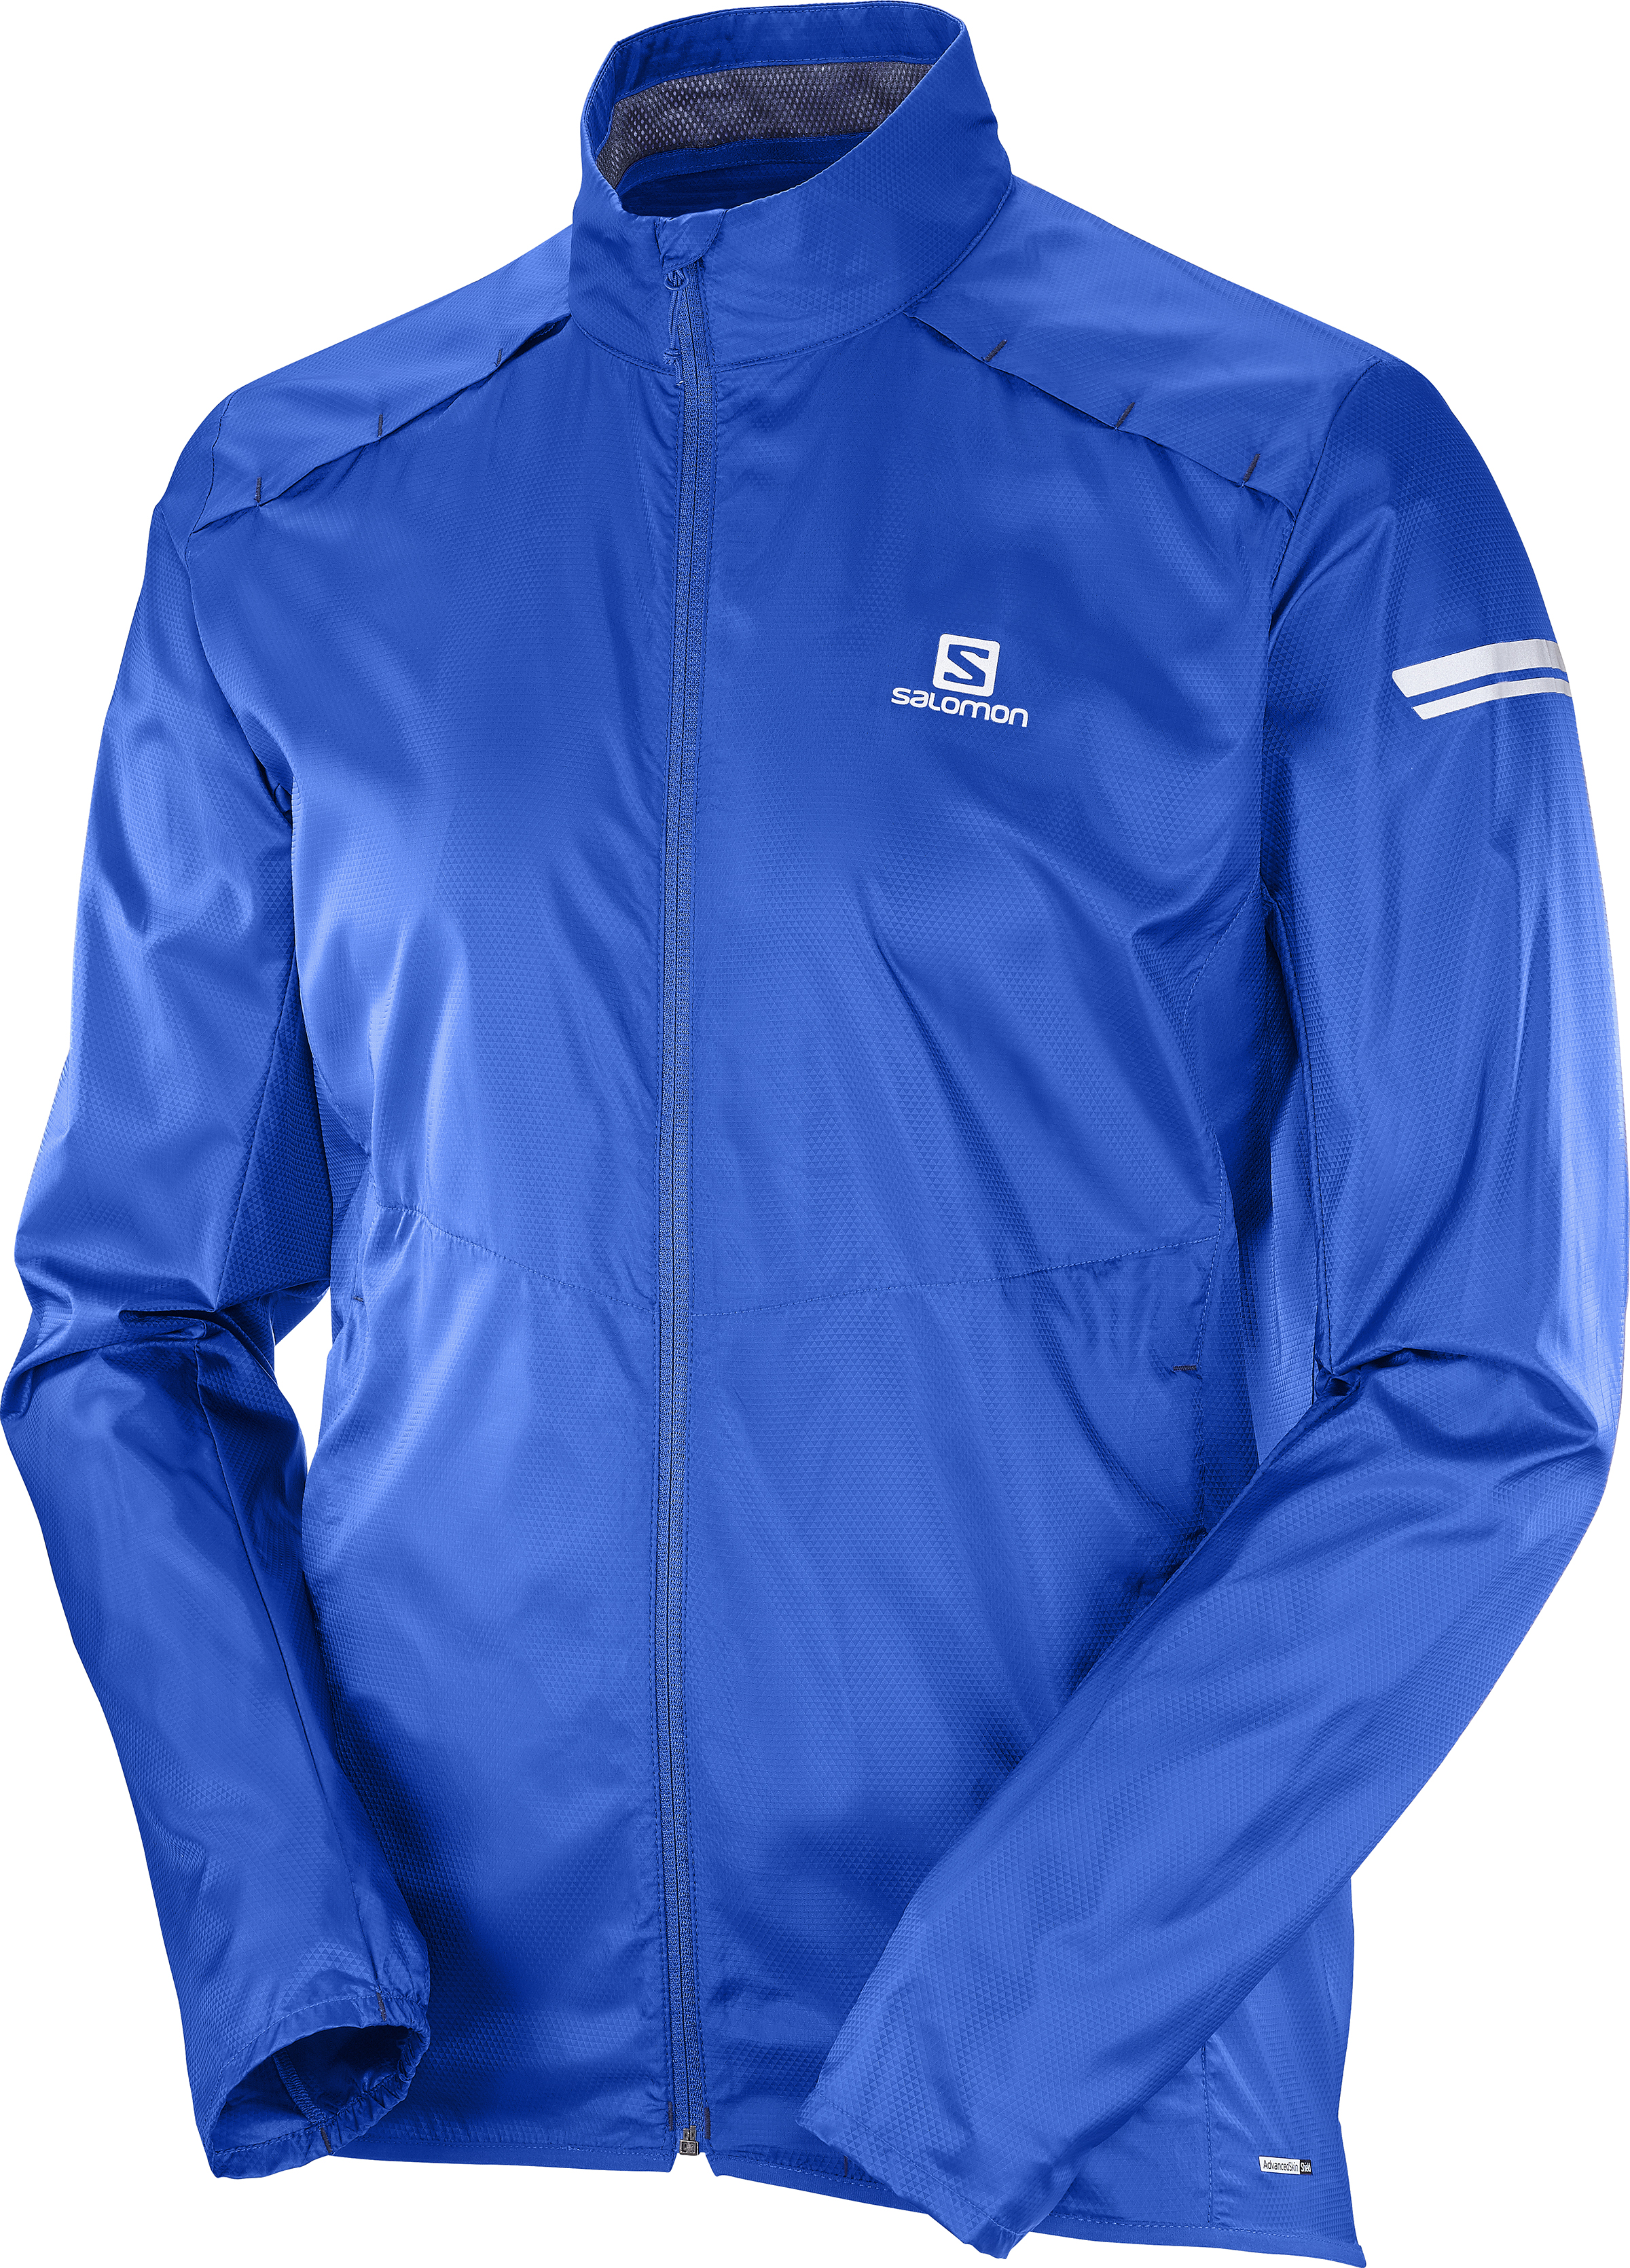 Salomon Agile Wind JKT 394239 modrá XL